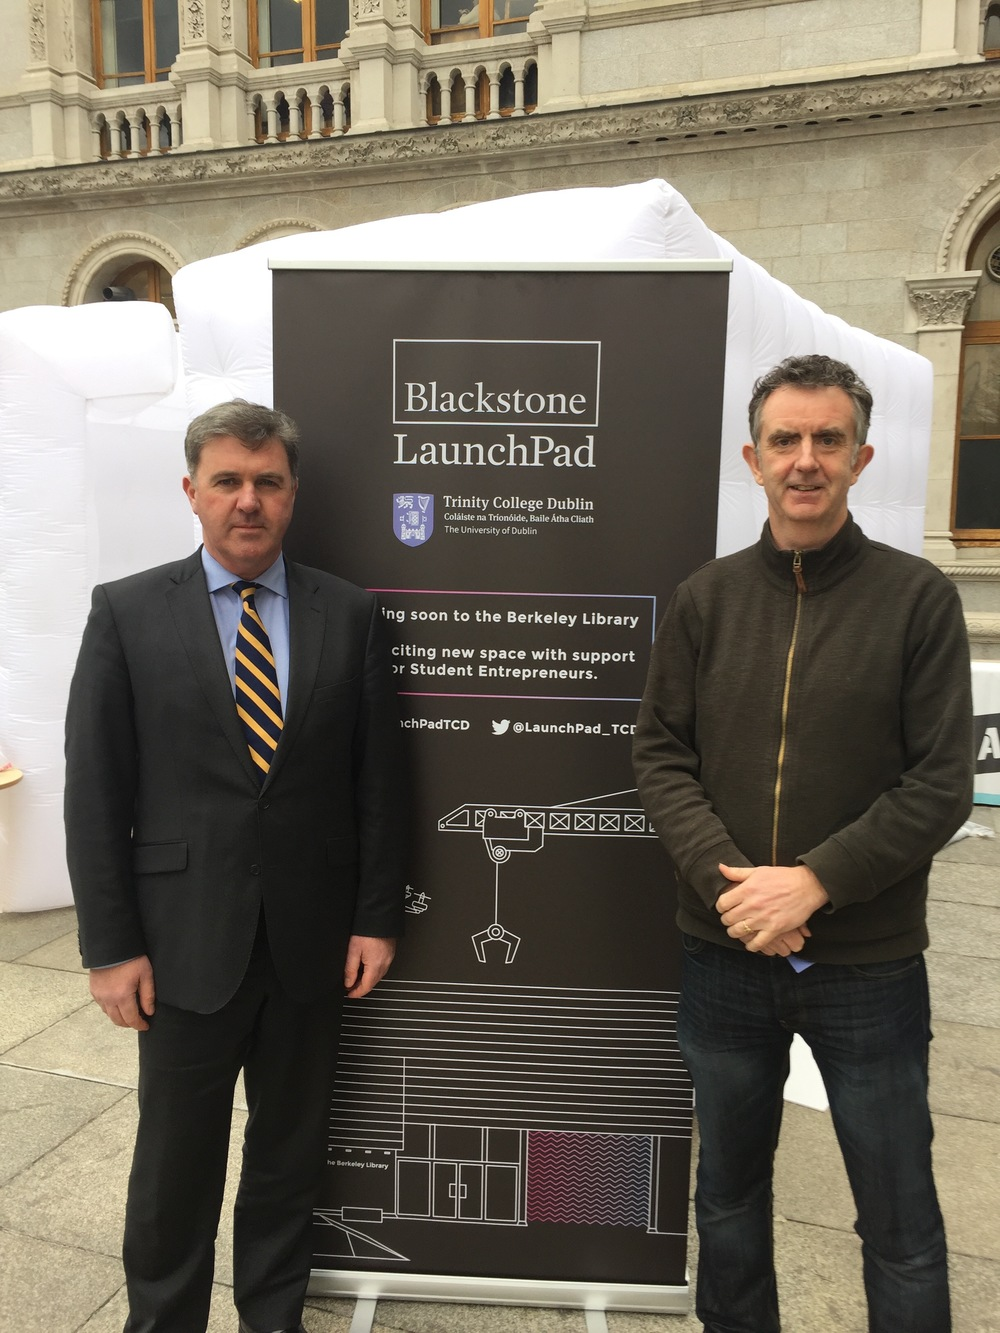 Announcement of Blackstone Launchpad with John Whelan, Director of Innovation, TCD